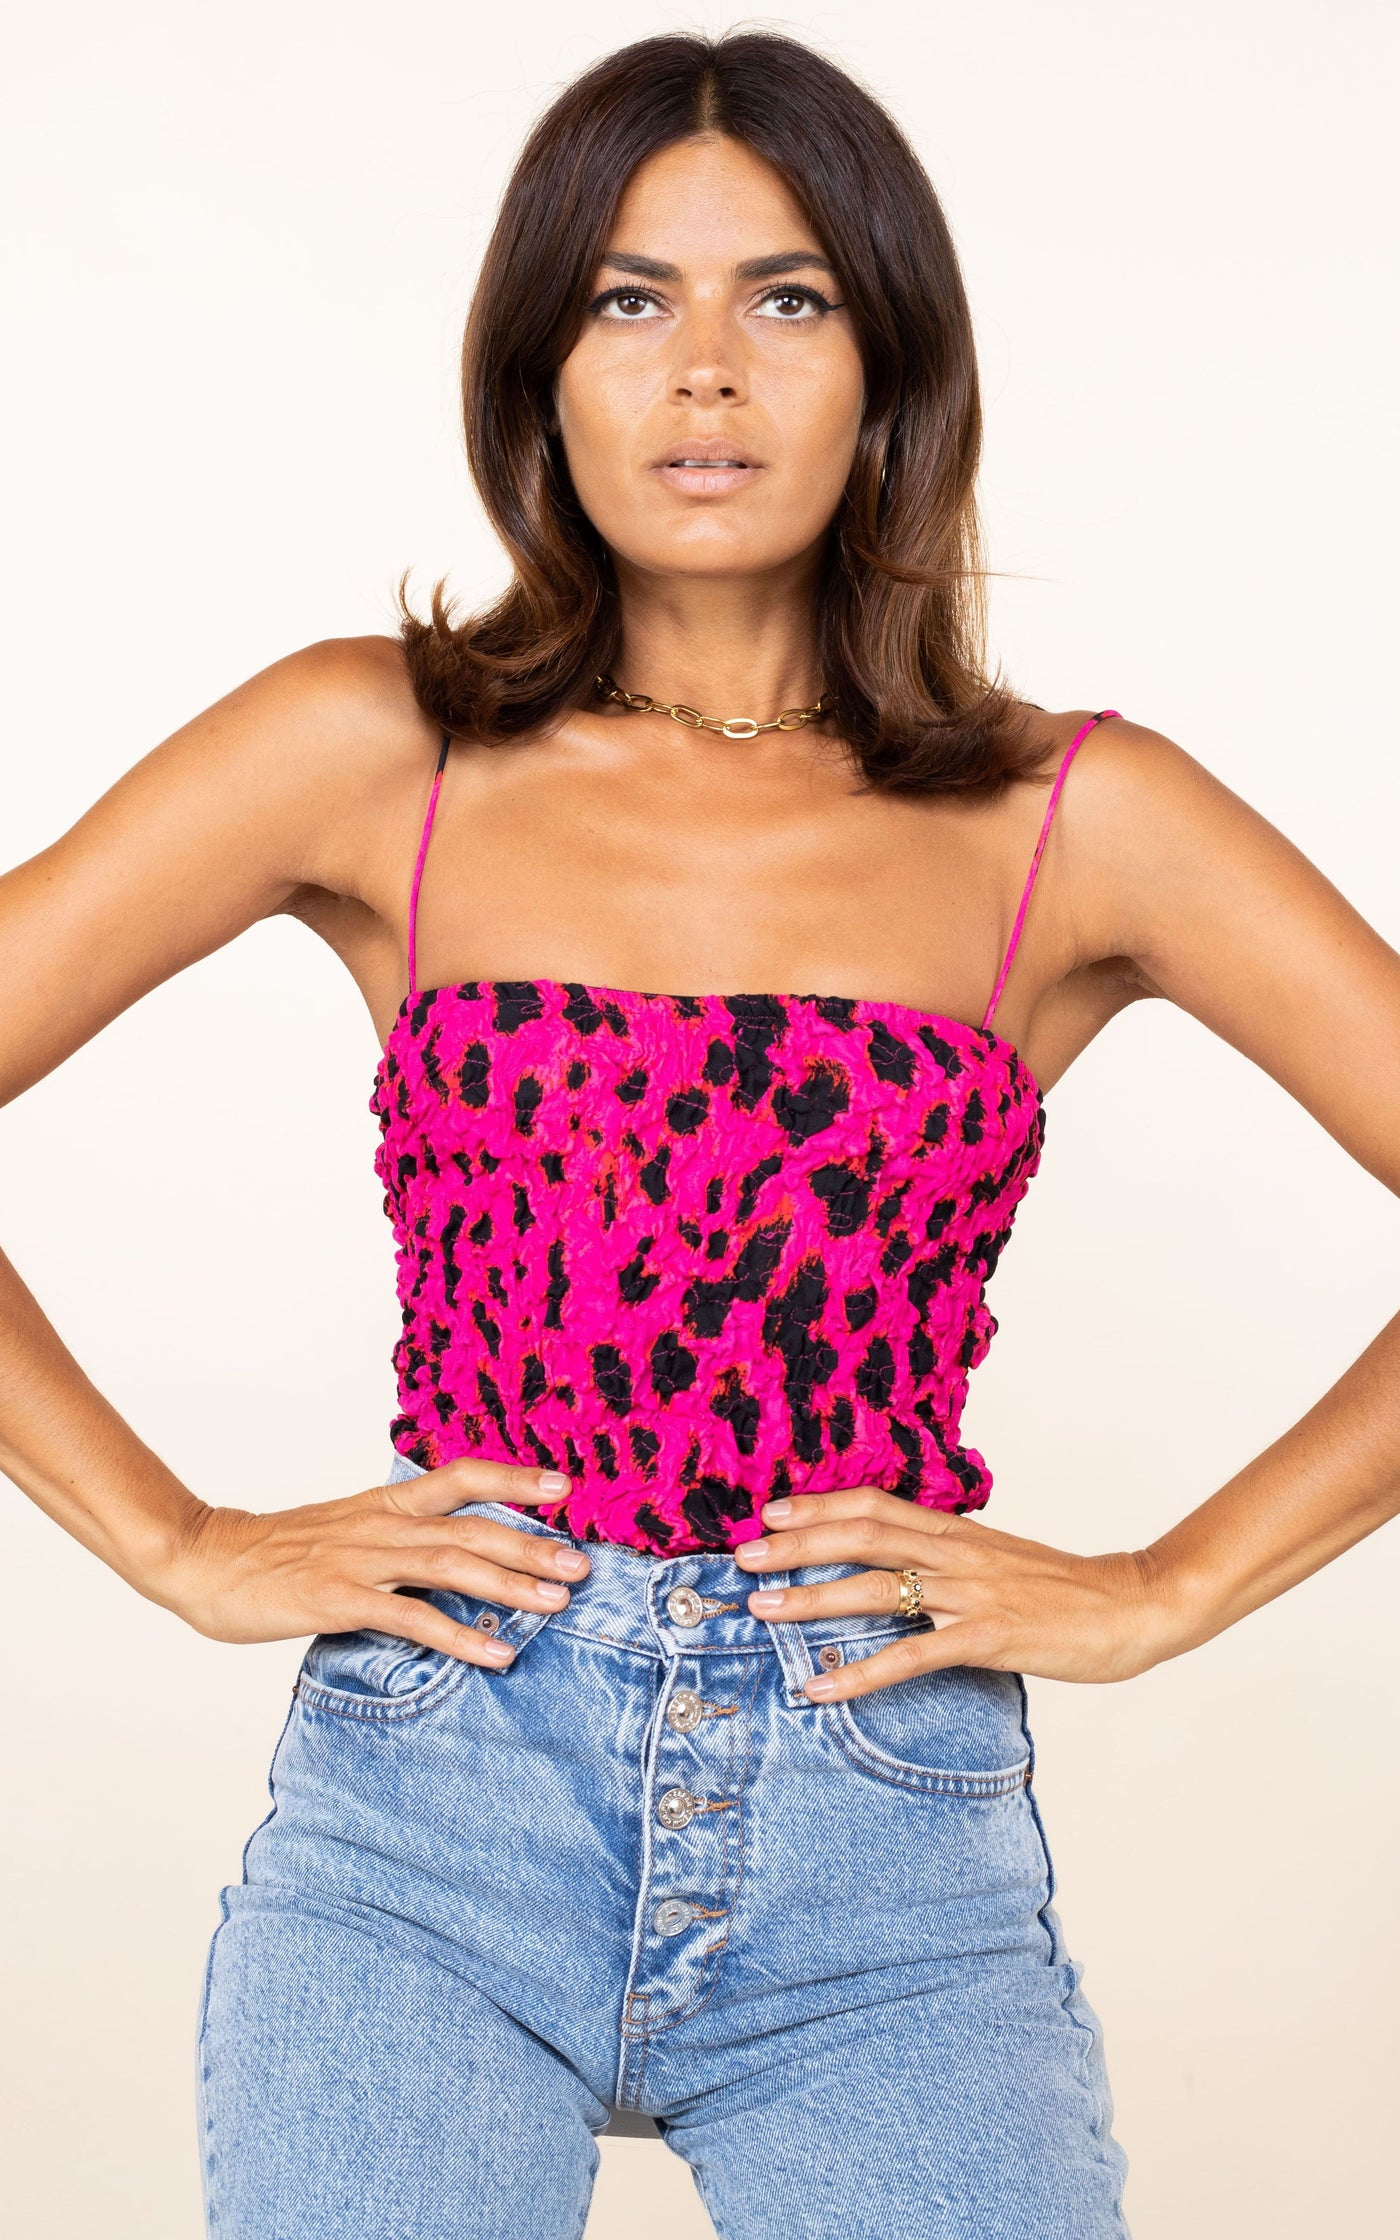 Dancing Leopard model faces forward with hands on hips wearing Storm Bodysuit in pink leopard print